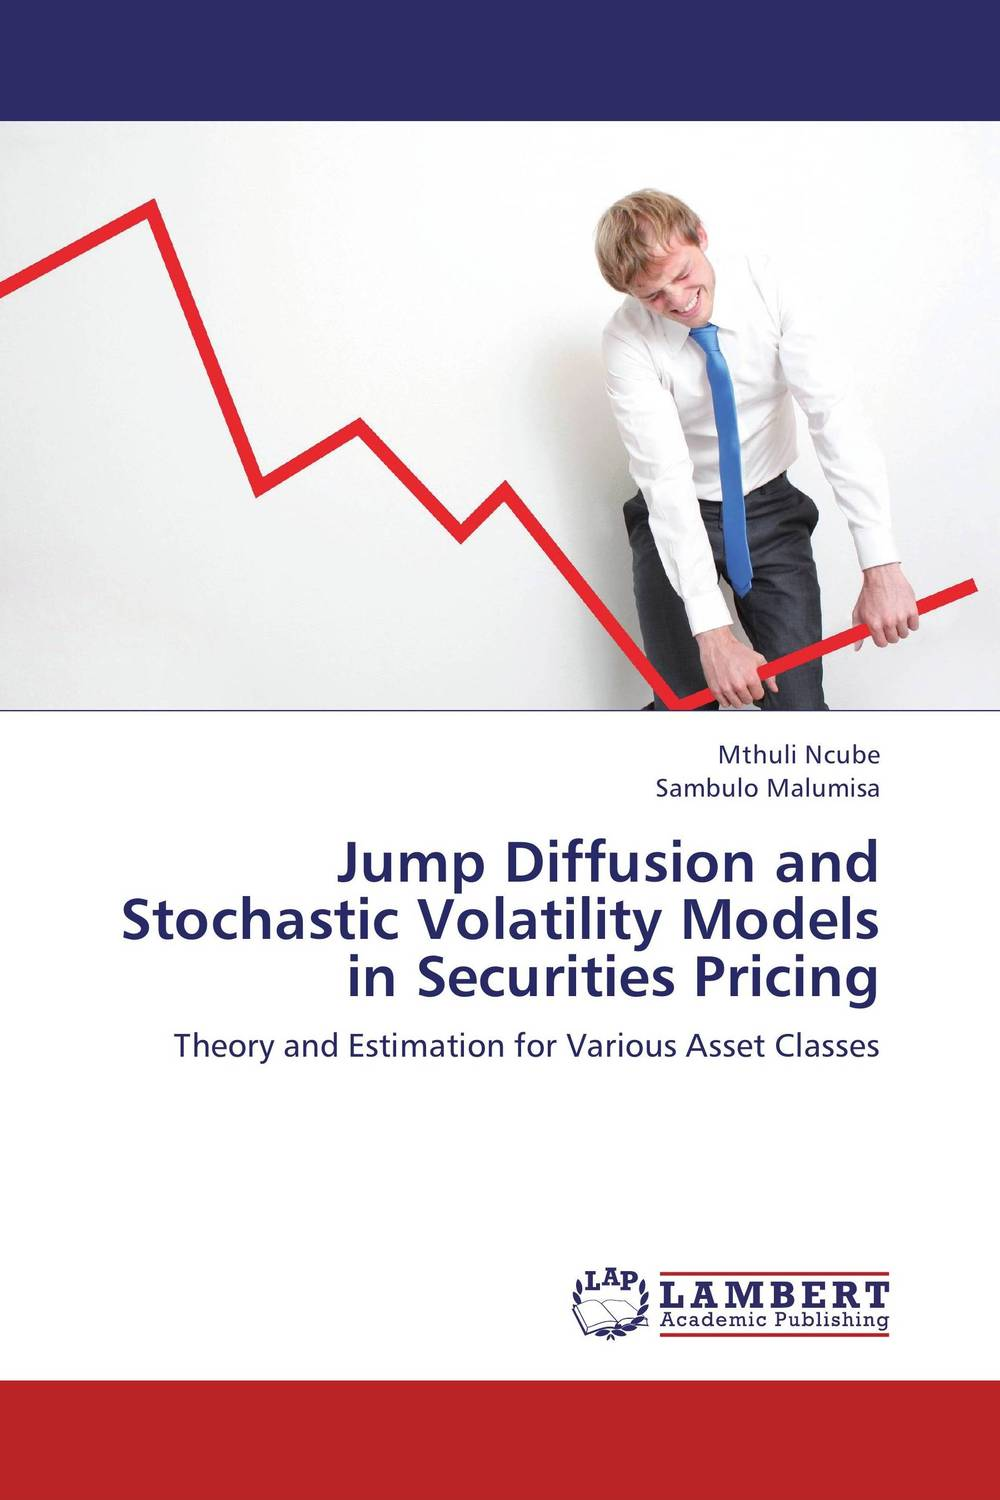 Jump Diffusion and Stochastic Volatility Models in Securities Pricing charles tapiero s risk finance and asset pricing value measurements and markets